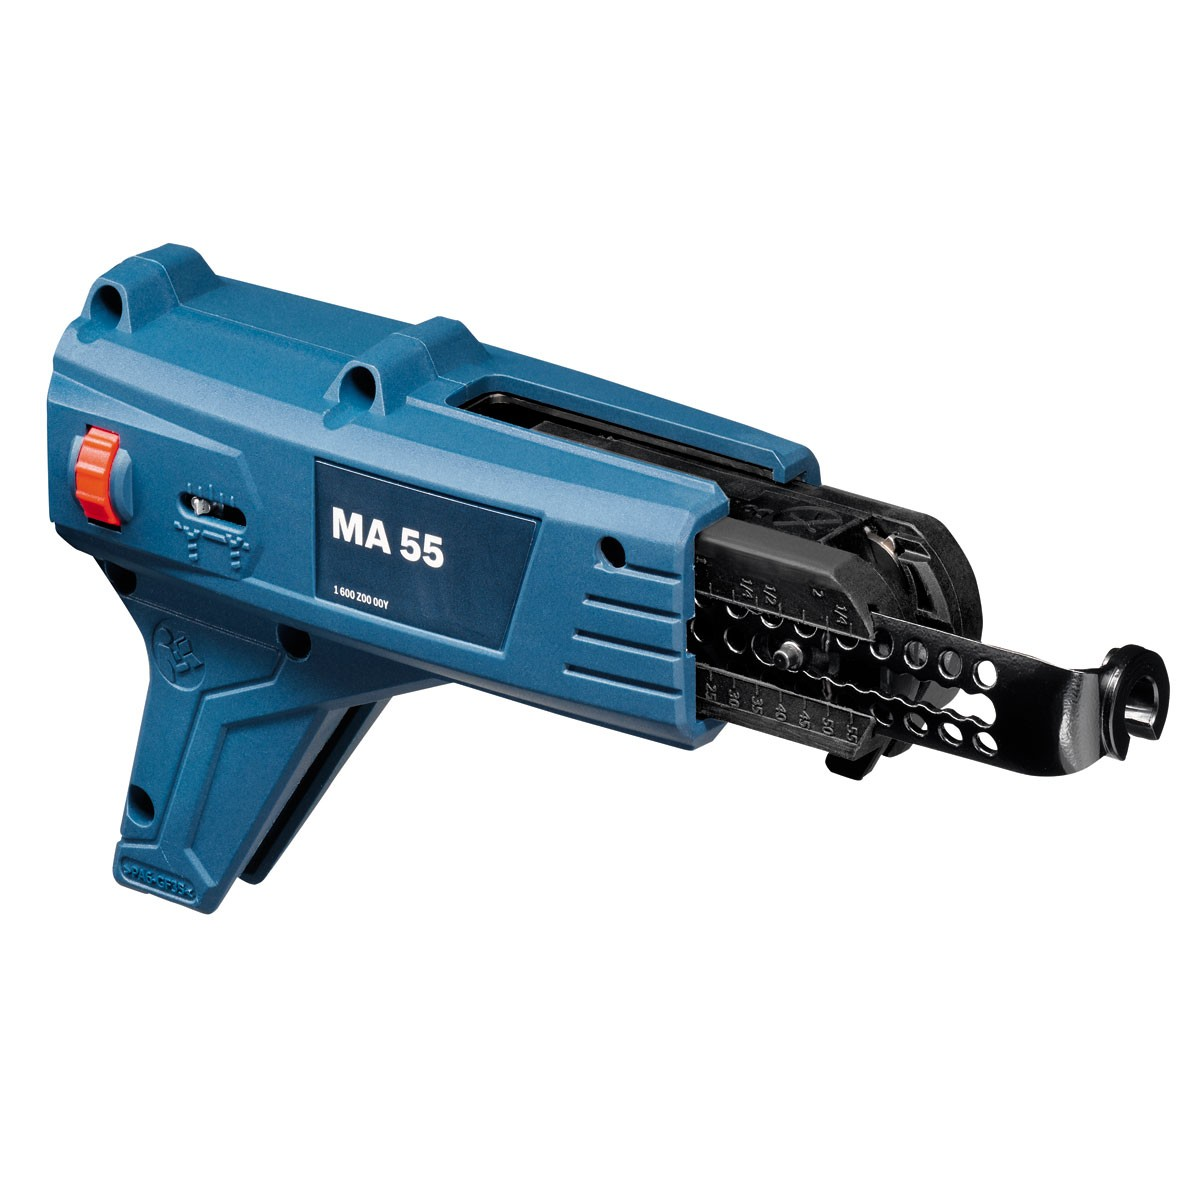 Bosch Ma 55 Drywall Screwdriver Collated Screw Attachment